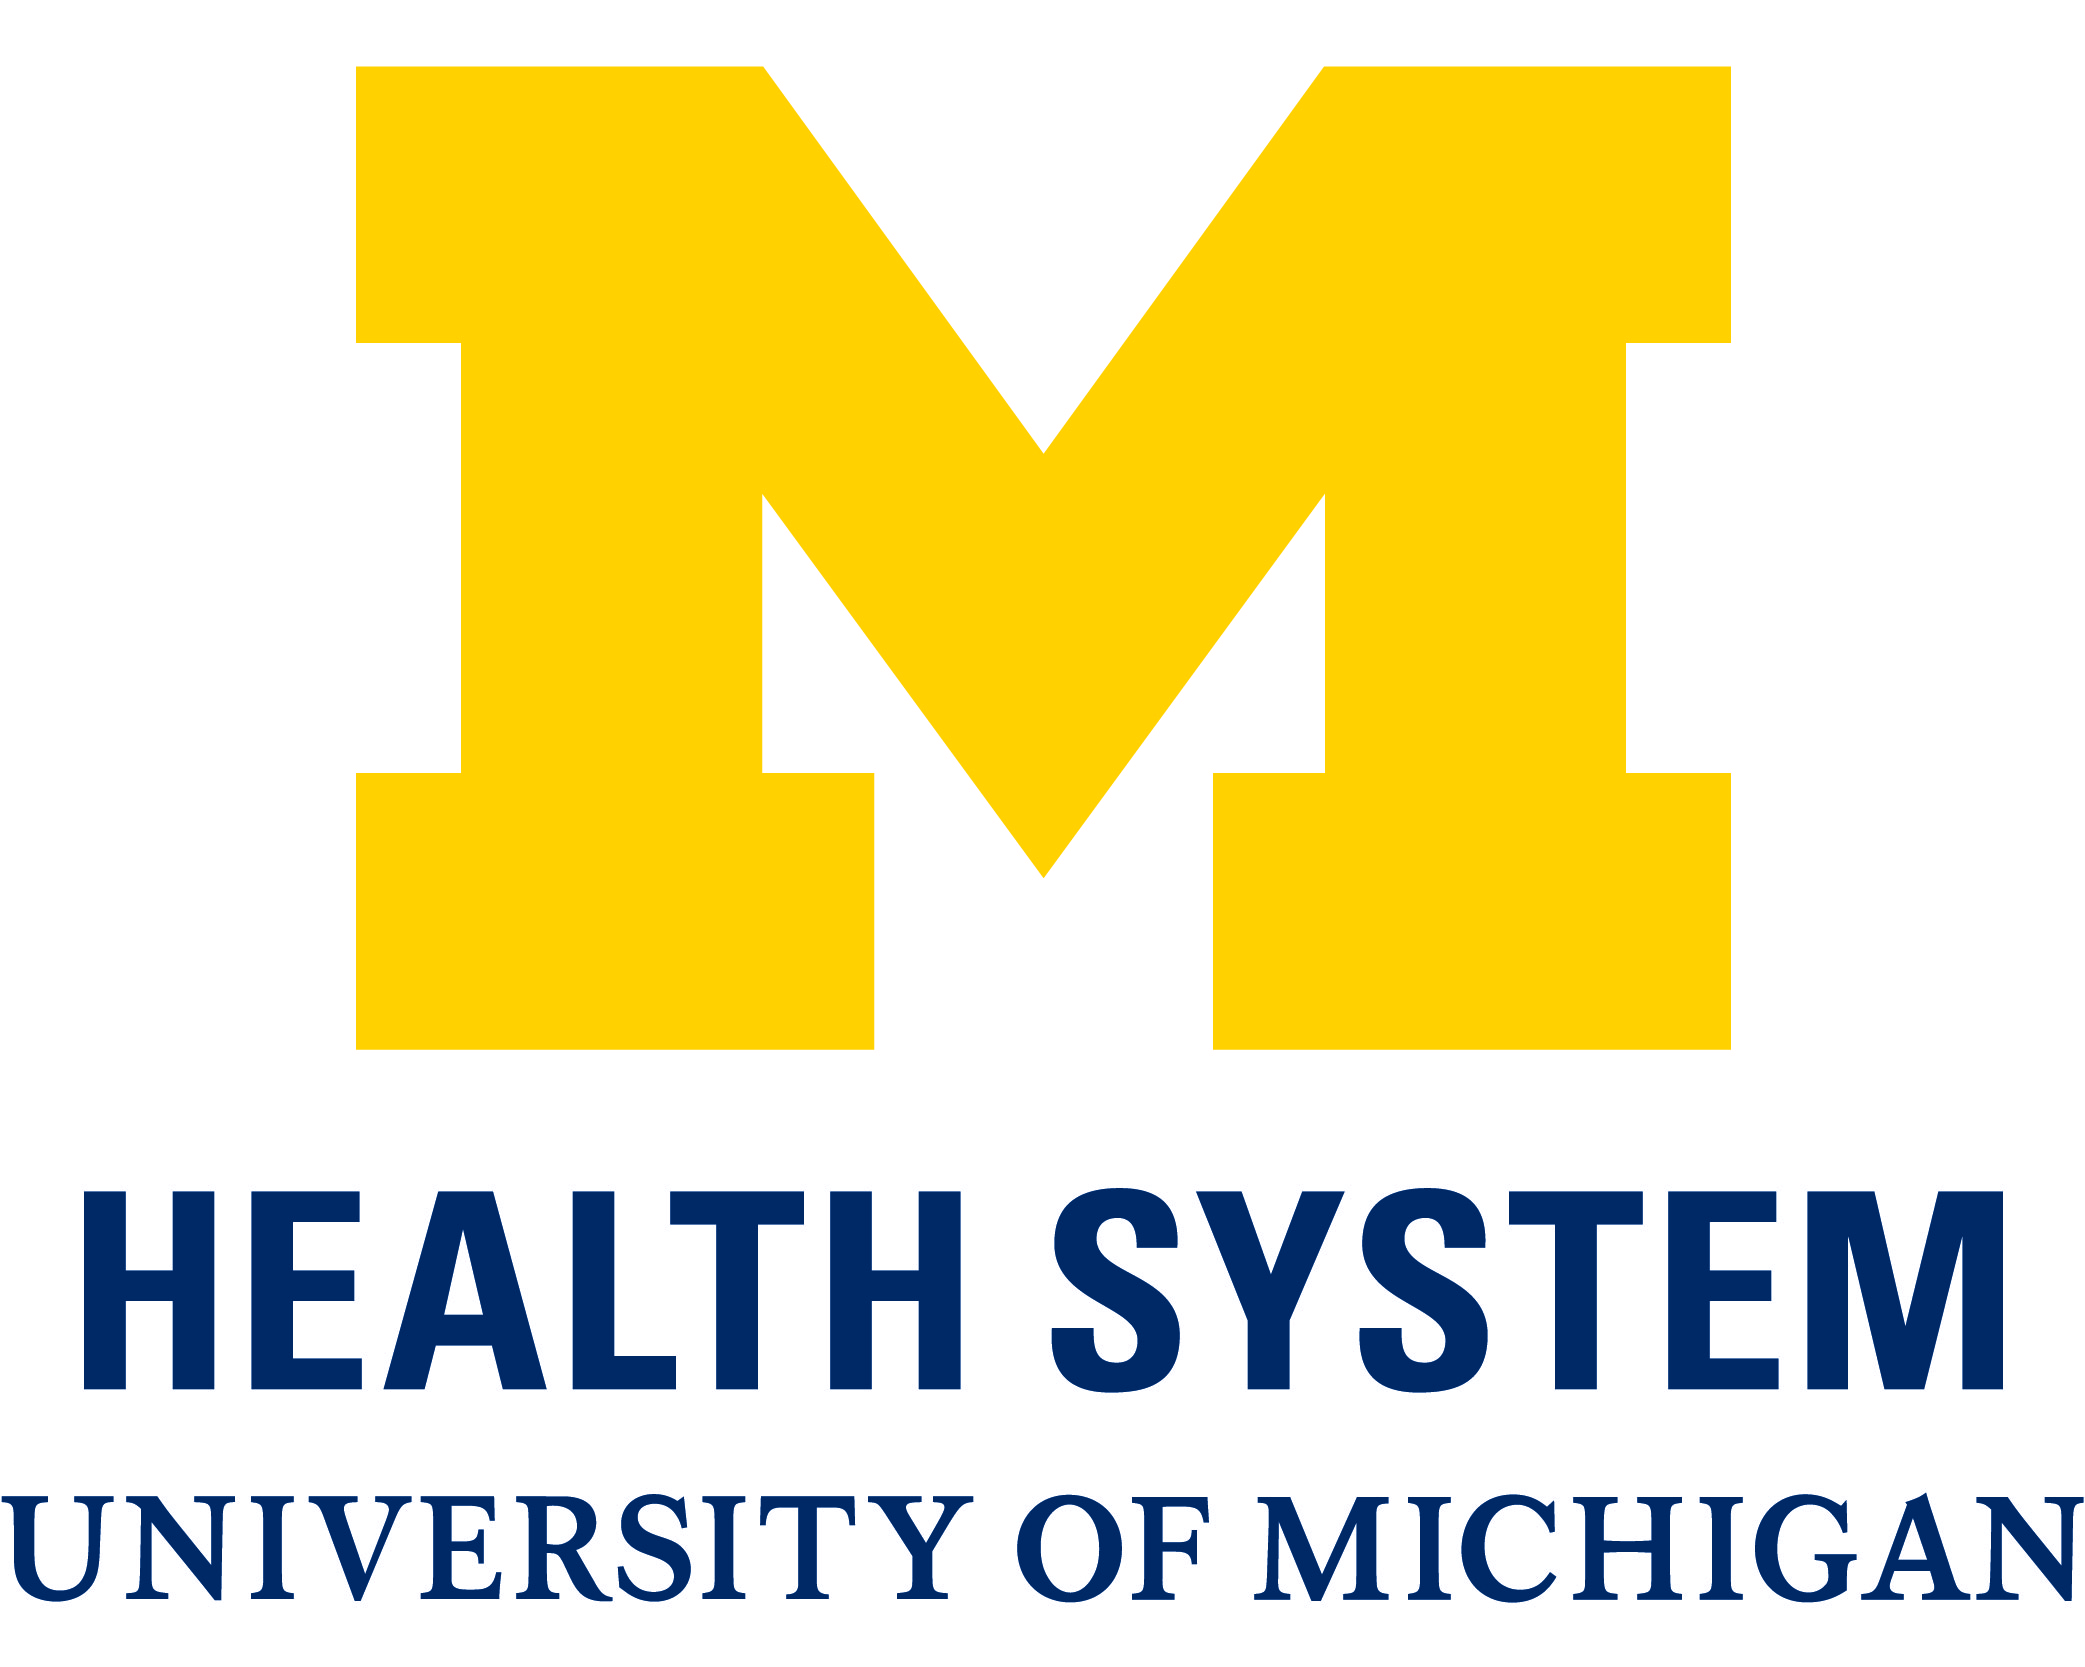 University of Michigan Health System